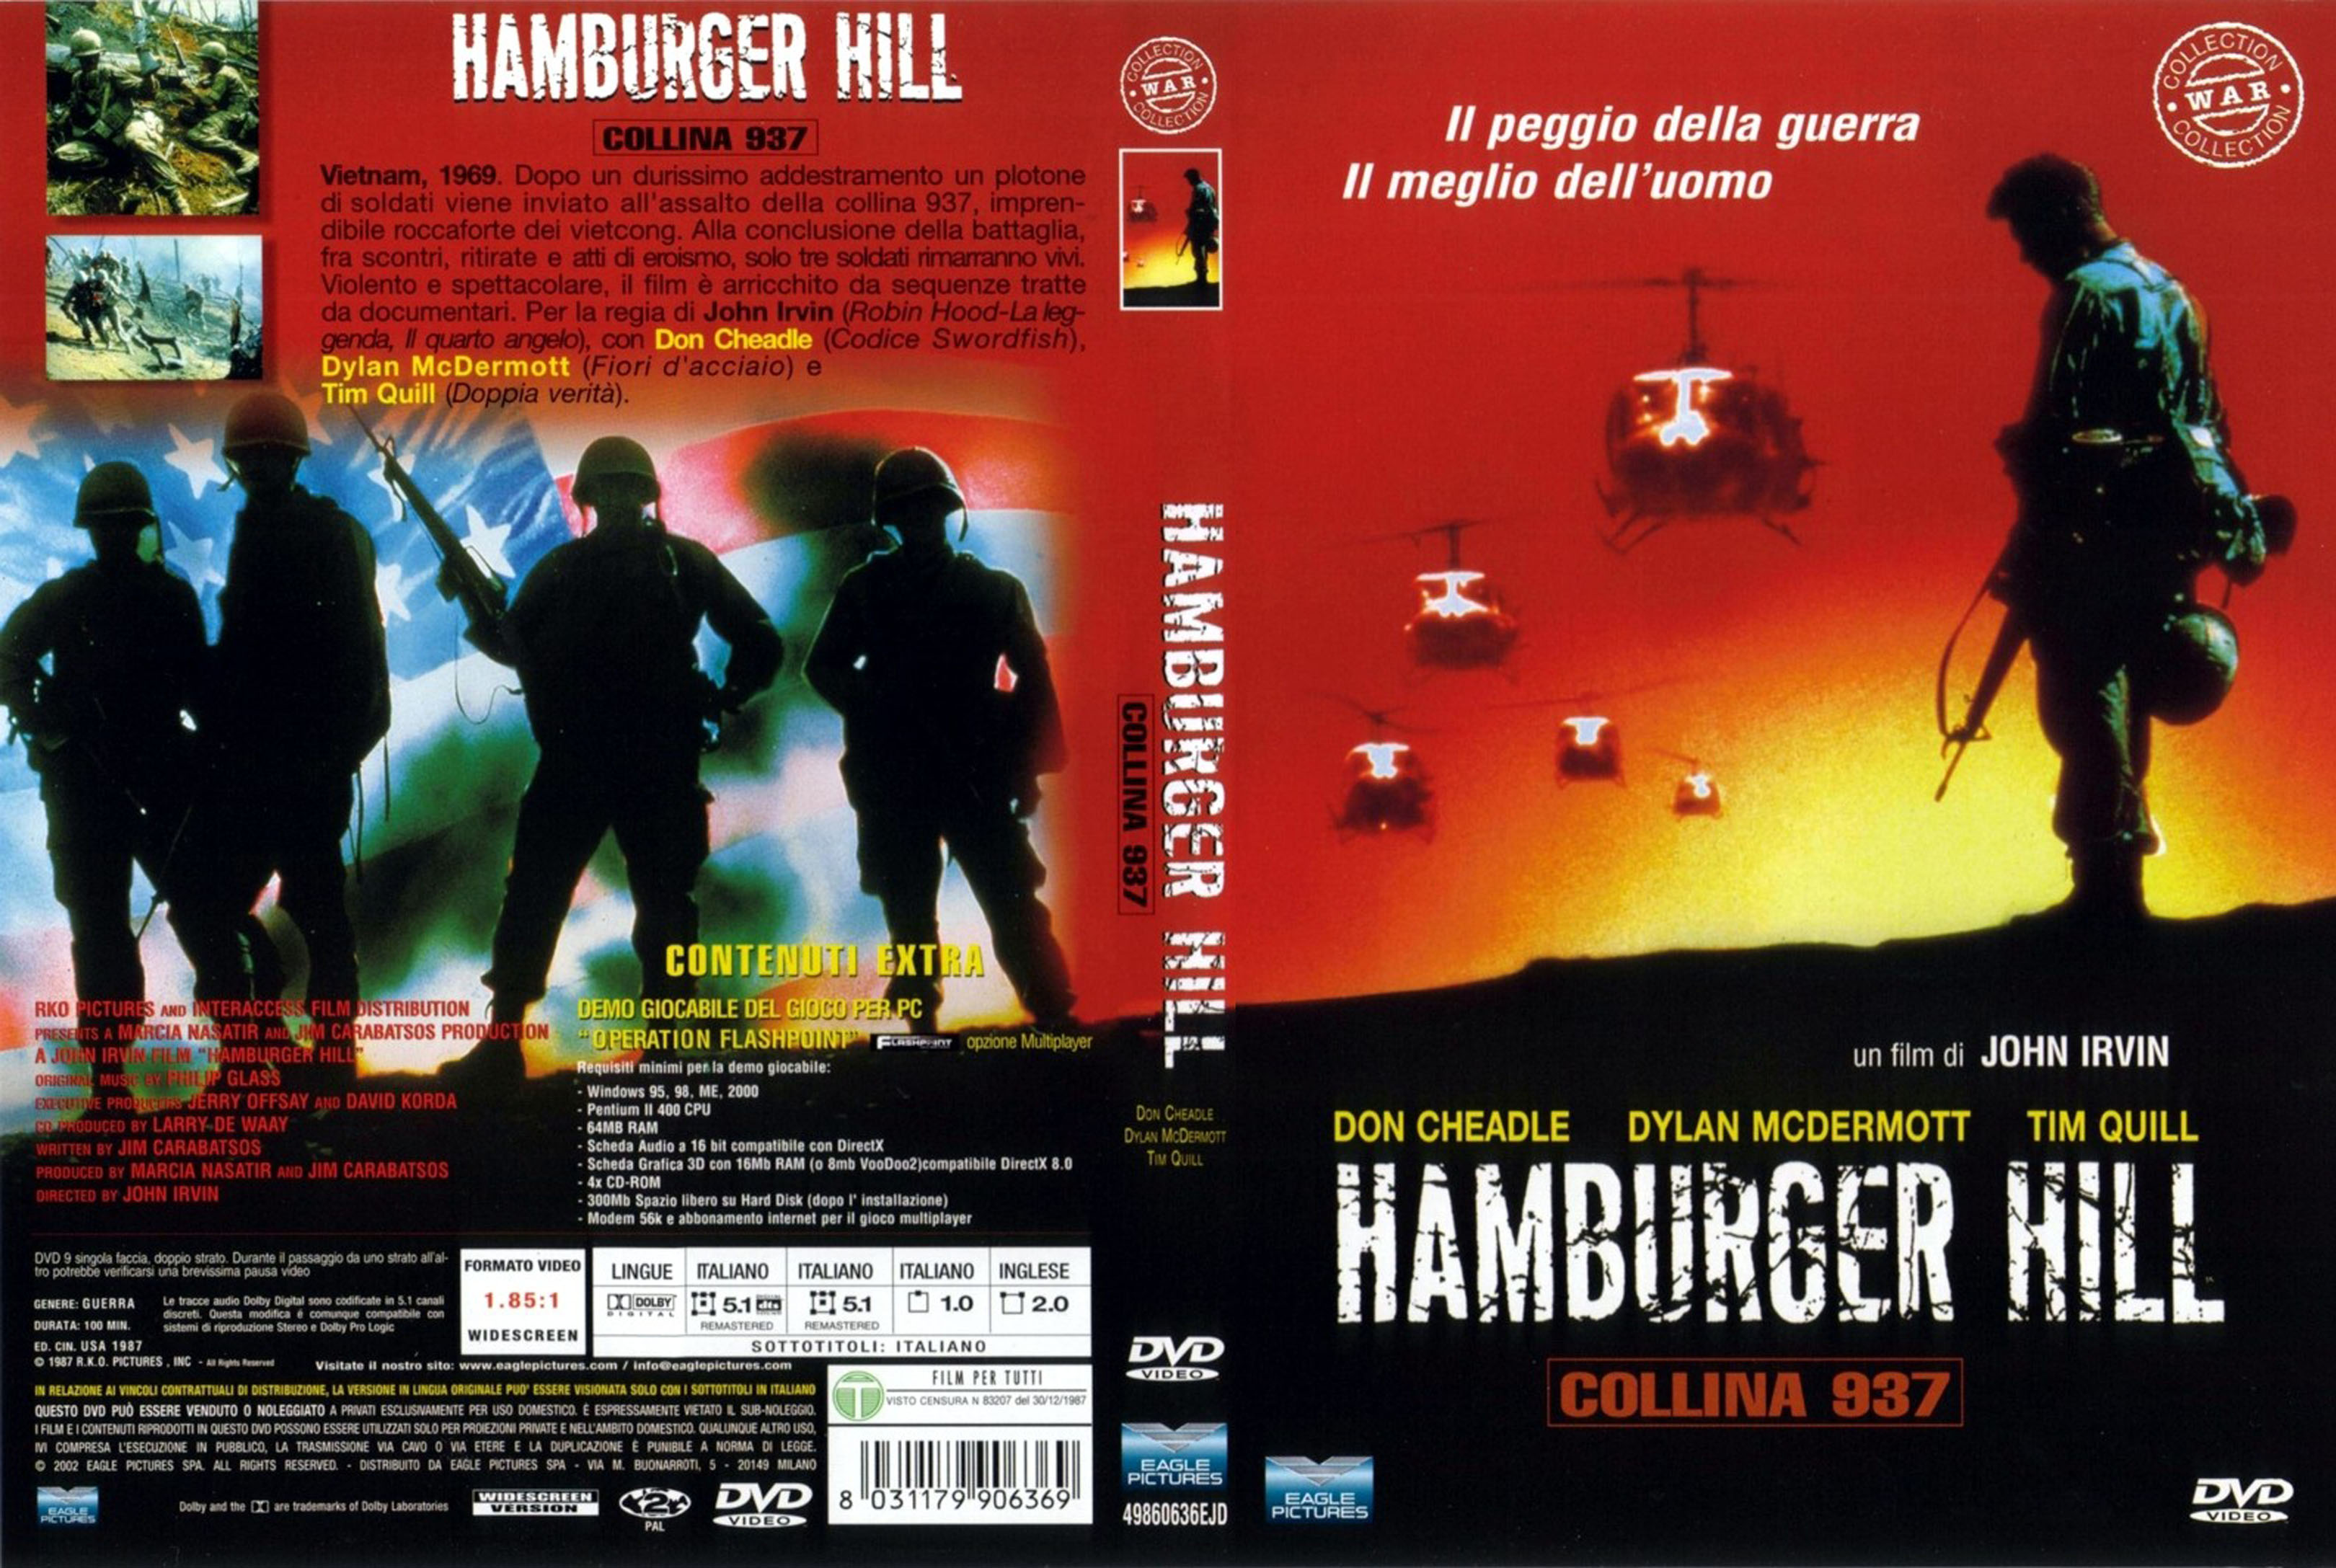 View, download, rate, and comment on this hamburger hill image